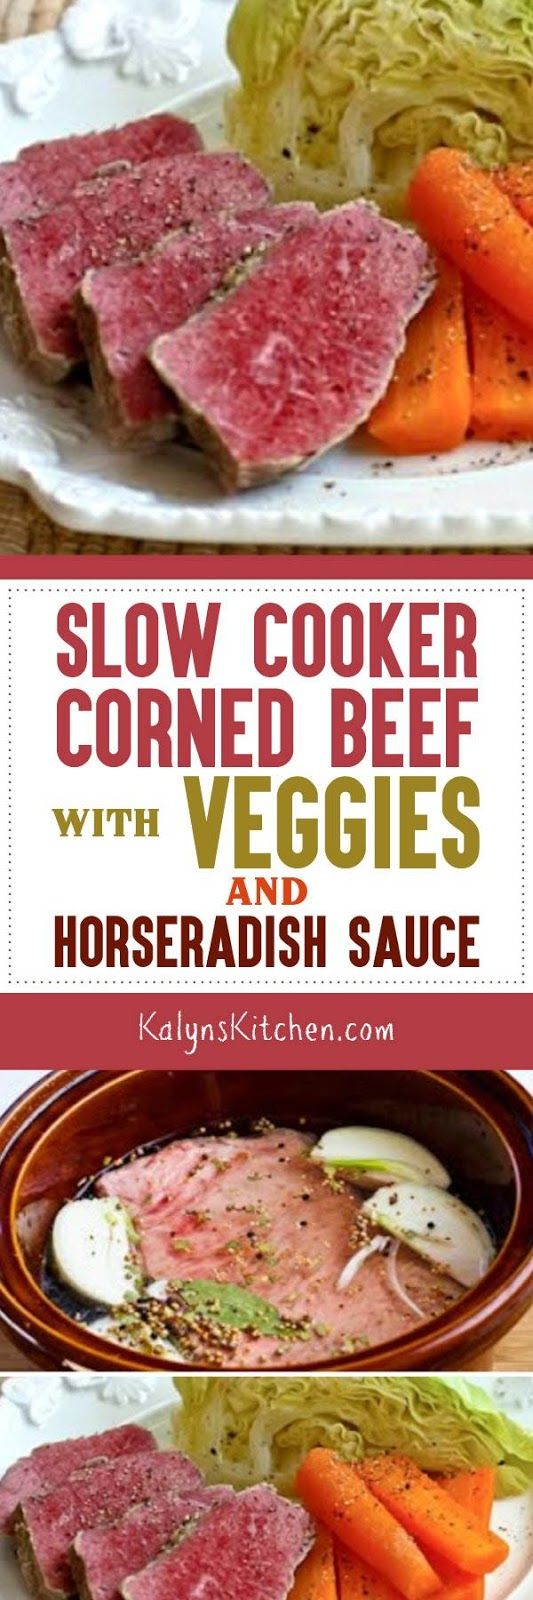 I know this type of corned beef dinner isn't authentically Irish, but I still like to make Slow Cooker Corned Beef with Veggies and Horseradish Sauce just about every year for St. Patrick's Day. And corned beef in the slow cooker couldn't be easier or more delicious. The corned beef and cabbage is low-carb, Keto, low-glycemic, and gluten-free; if you add carrots they are higher in carbs. [found on KalynsKitchen.com] #CornedBeef #SlowCookerCornedBeef #SlowCookerRecipe